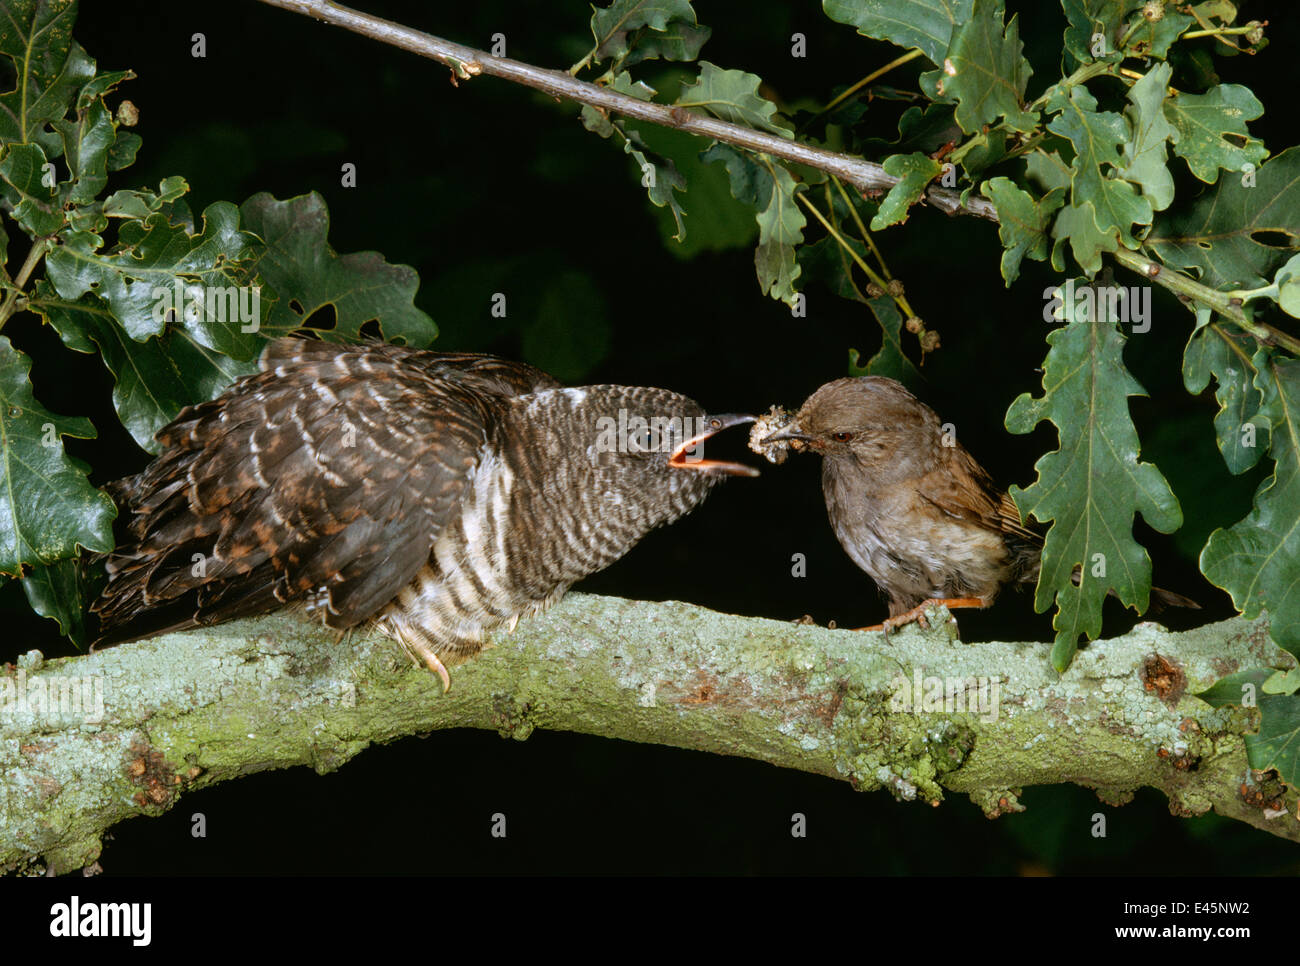 Hedgesparrow / Dunnock (Prunella modularis)feeding European cuckoo (Cuculus canorus) in oak tree, UK - Stock Image